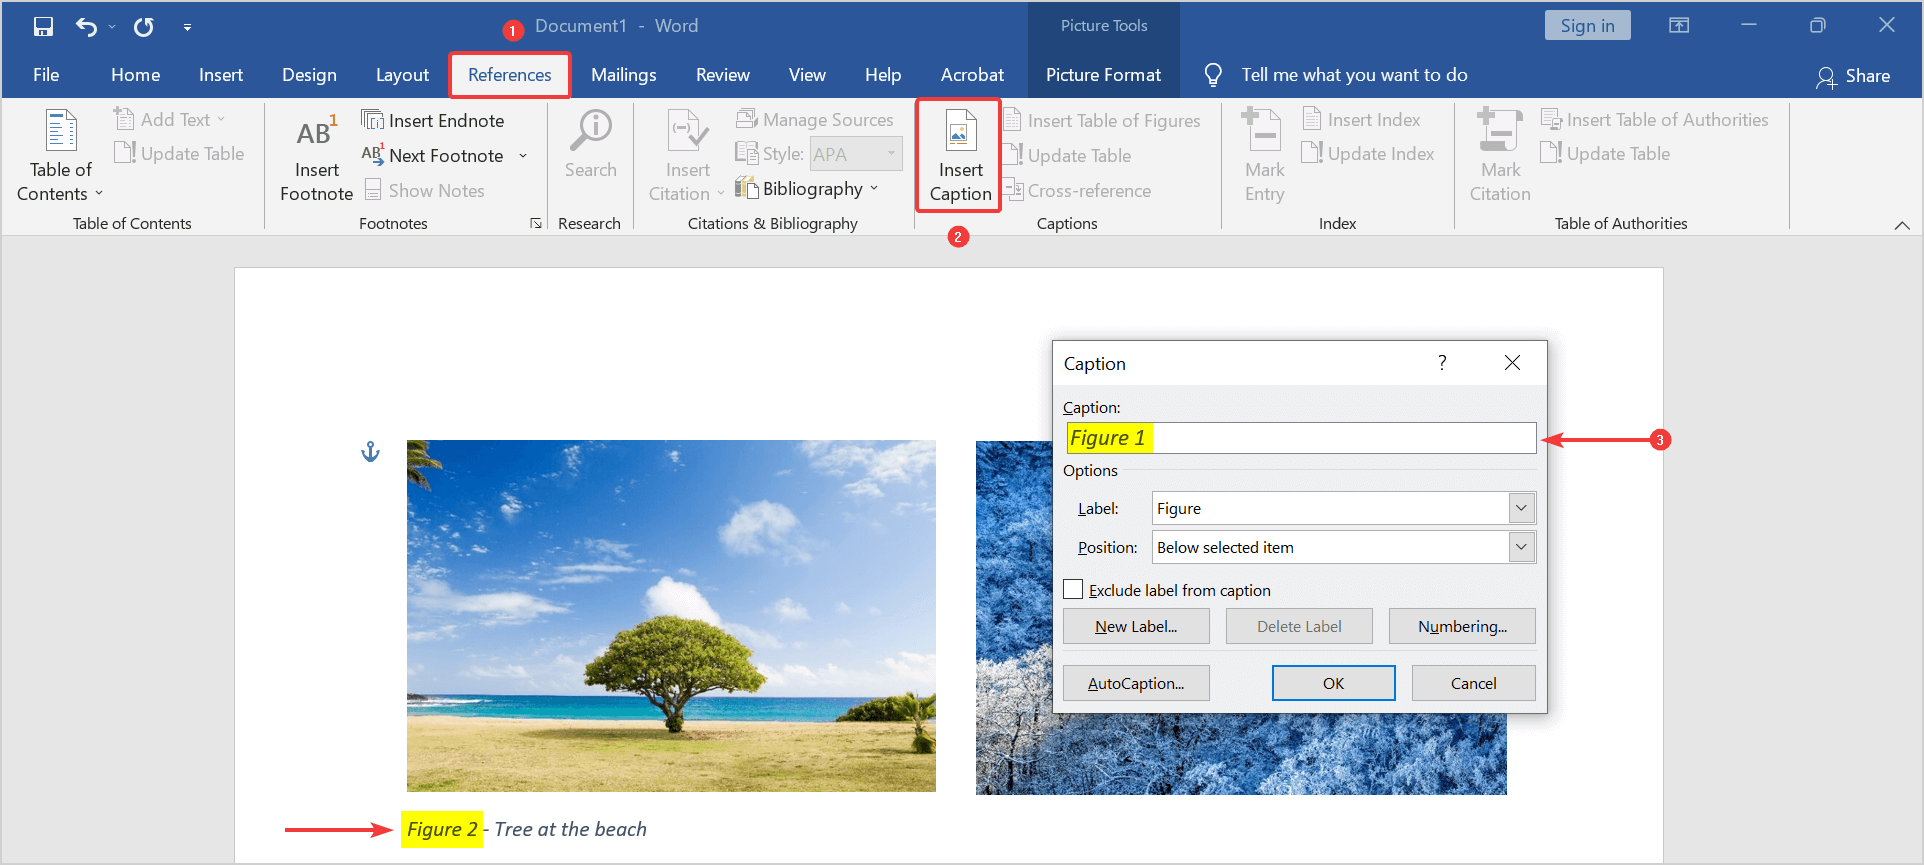 Figure 1 caption in text box wrong, because the picture is set with text wrapping